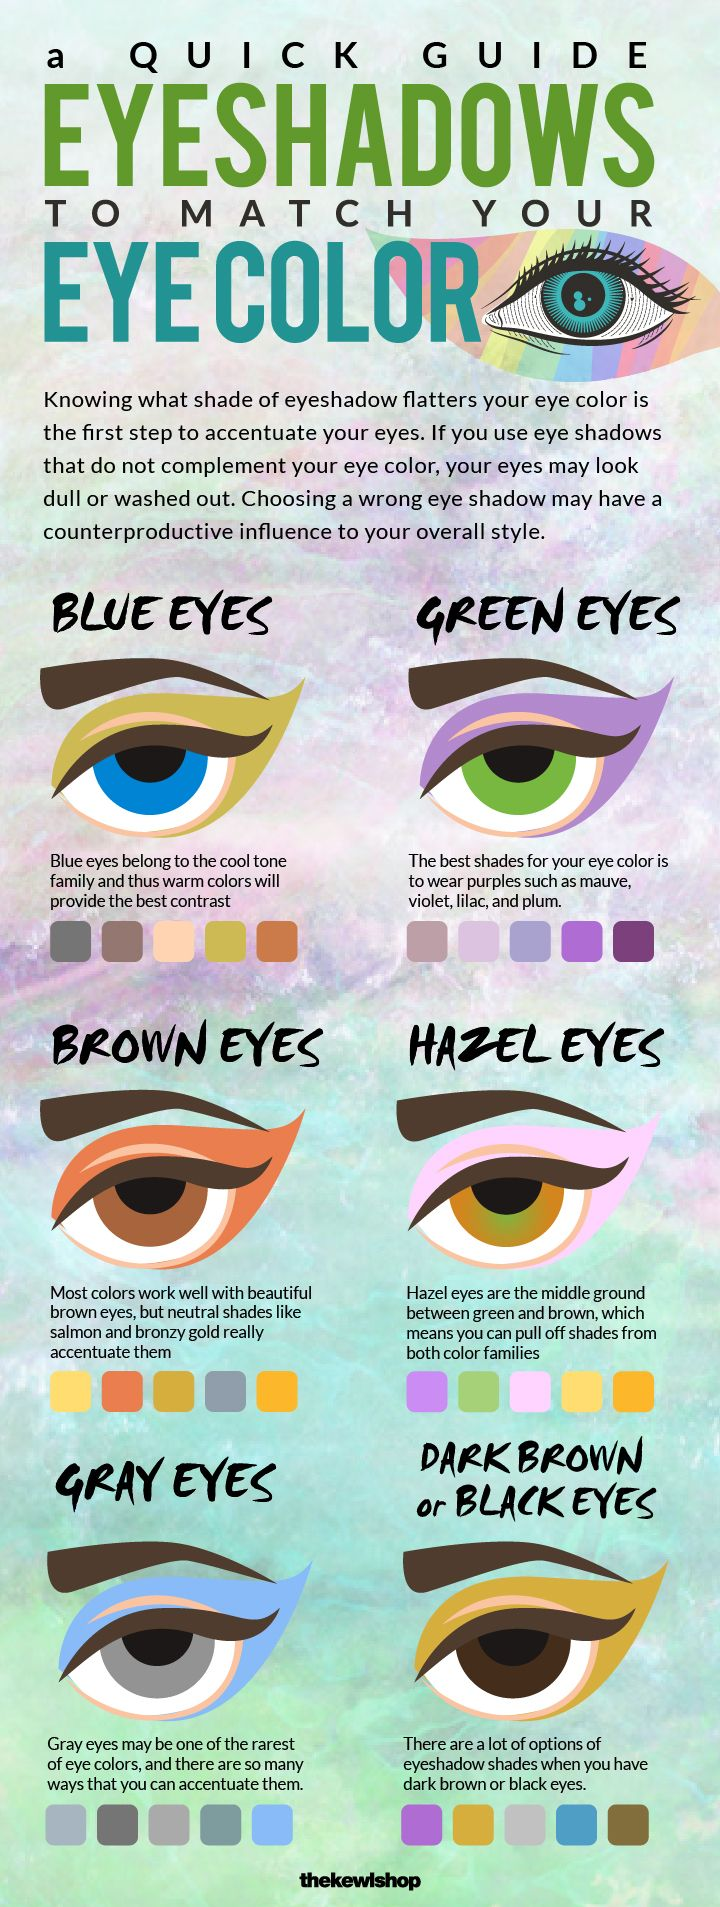 If you use a wrong shade of eyeshadow you may run the risk of wearing eyeshadow that is unflattering to your face. An unflattering eyeshadow conceals the beauty of your eye color and may clash with your style.